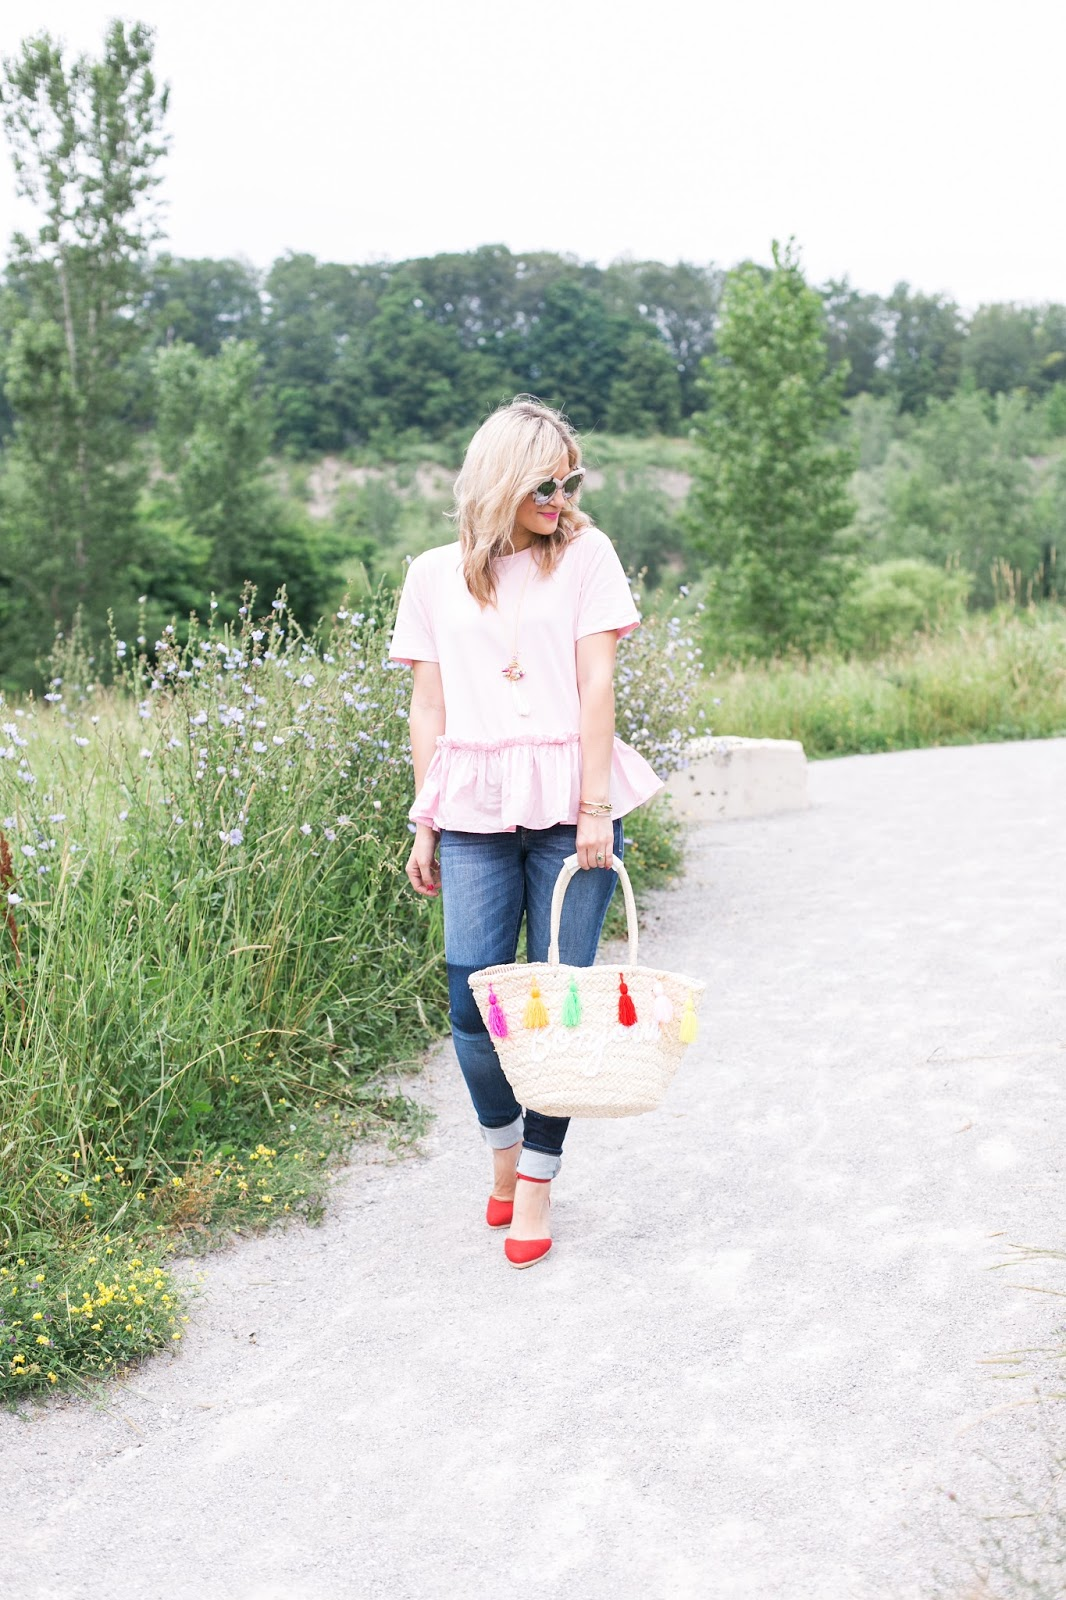 Bijuleni | 8 Easy tips for Taking Amazing Outfit Photos - Pink peplum top, Guess jeggings, red wedges, bonjour straw bag ootd .